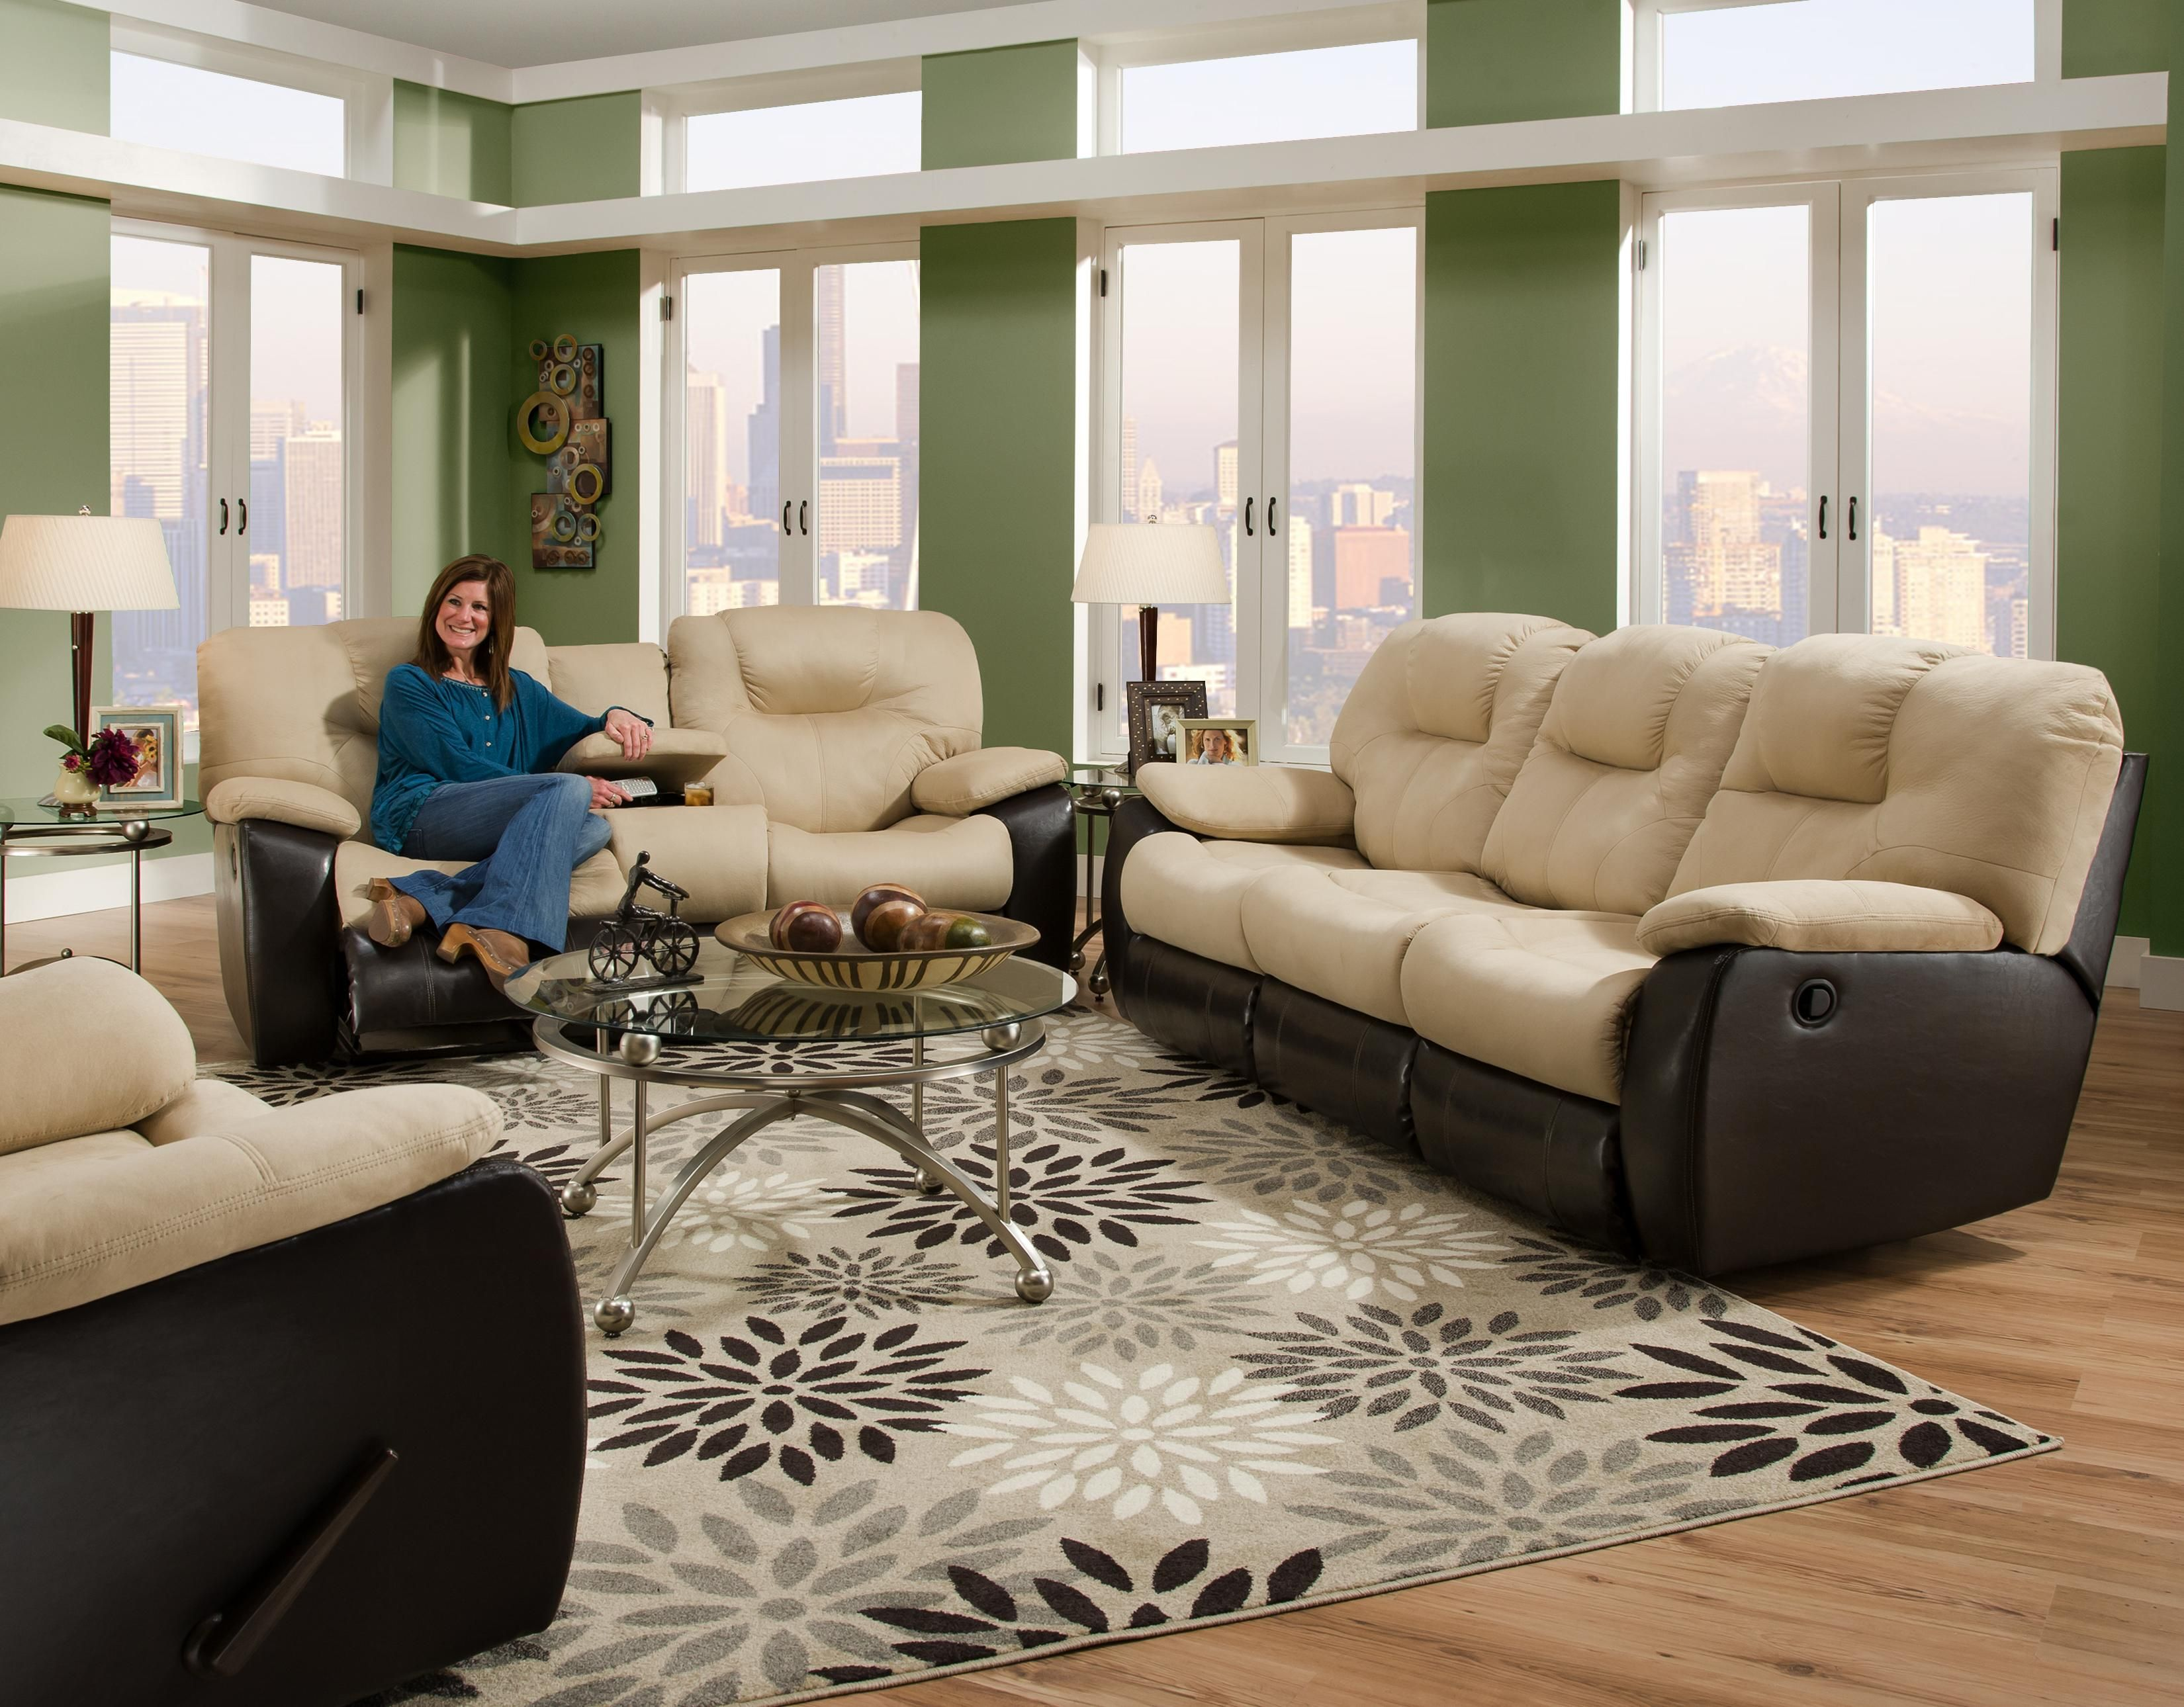 Cool Pin By Turk Furniture On Living Room Love Pinterest Sofa Gmtry Best Dining Table And Chair Ideas Images Gmtryco